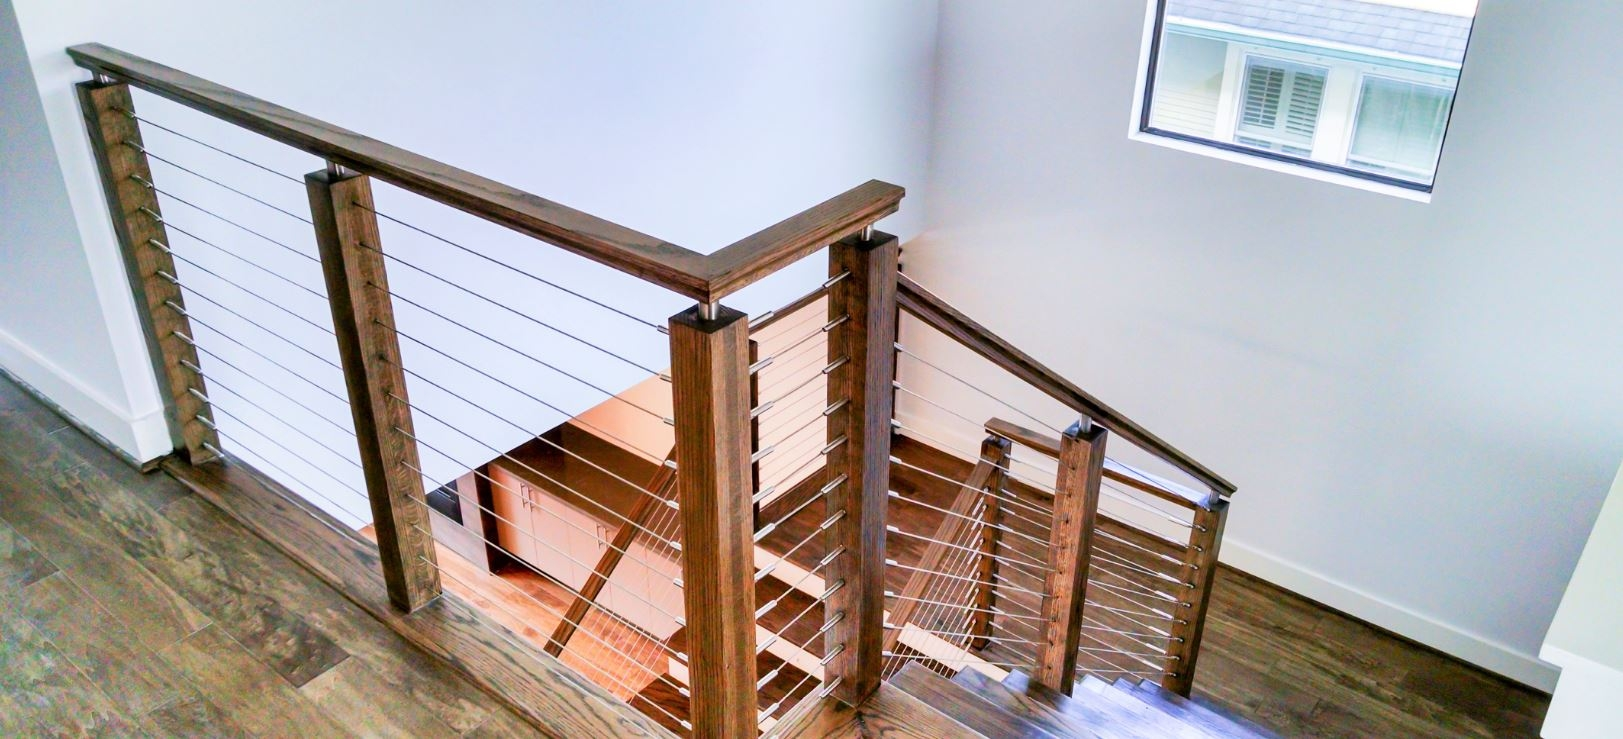 Modern Railing Systems In Wood Cable Wire Stainless Steel Glass | Modern Wood Staircase Railing | Interior | Stylish | Wall Mounted | Contemporary | House